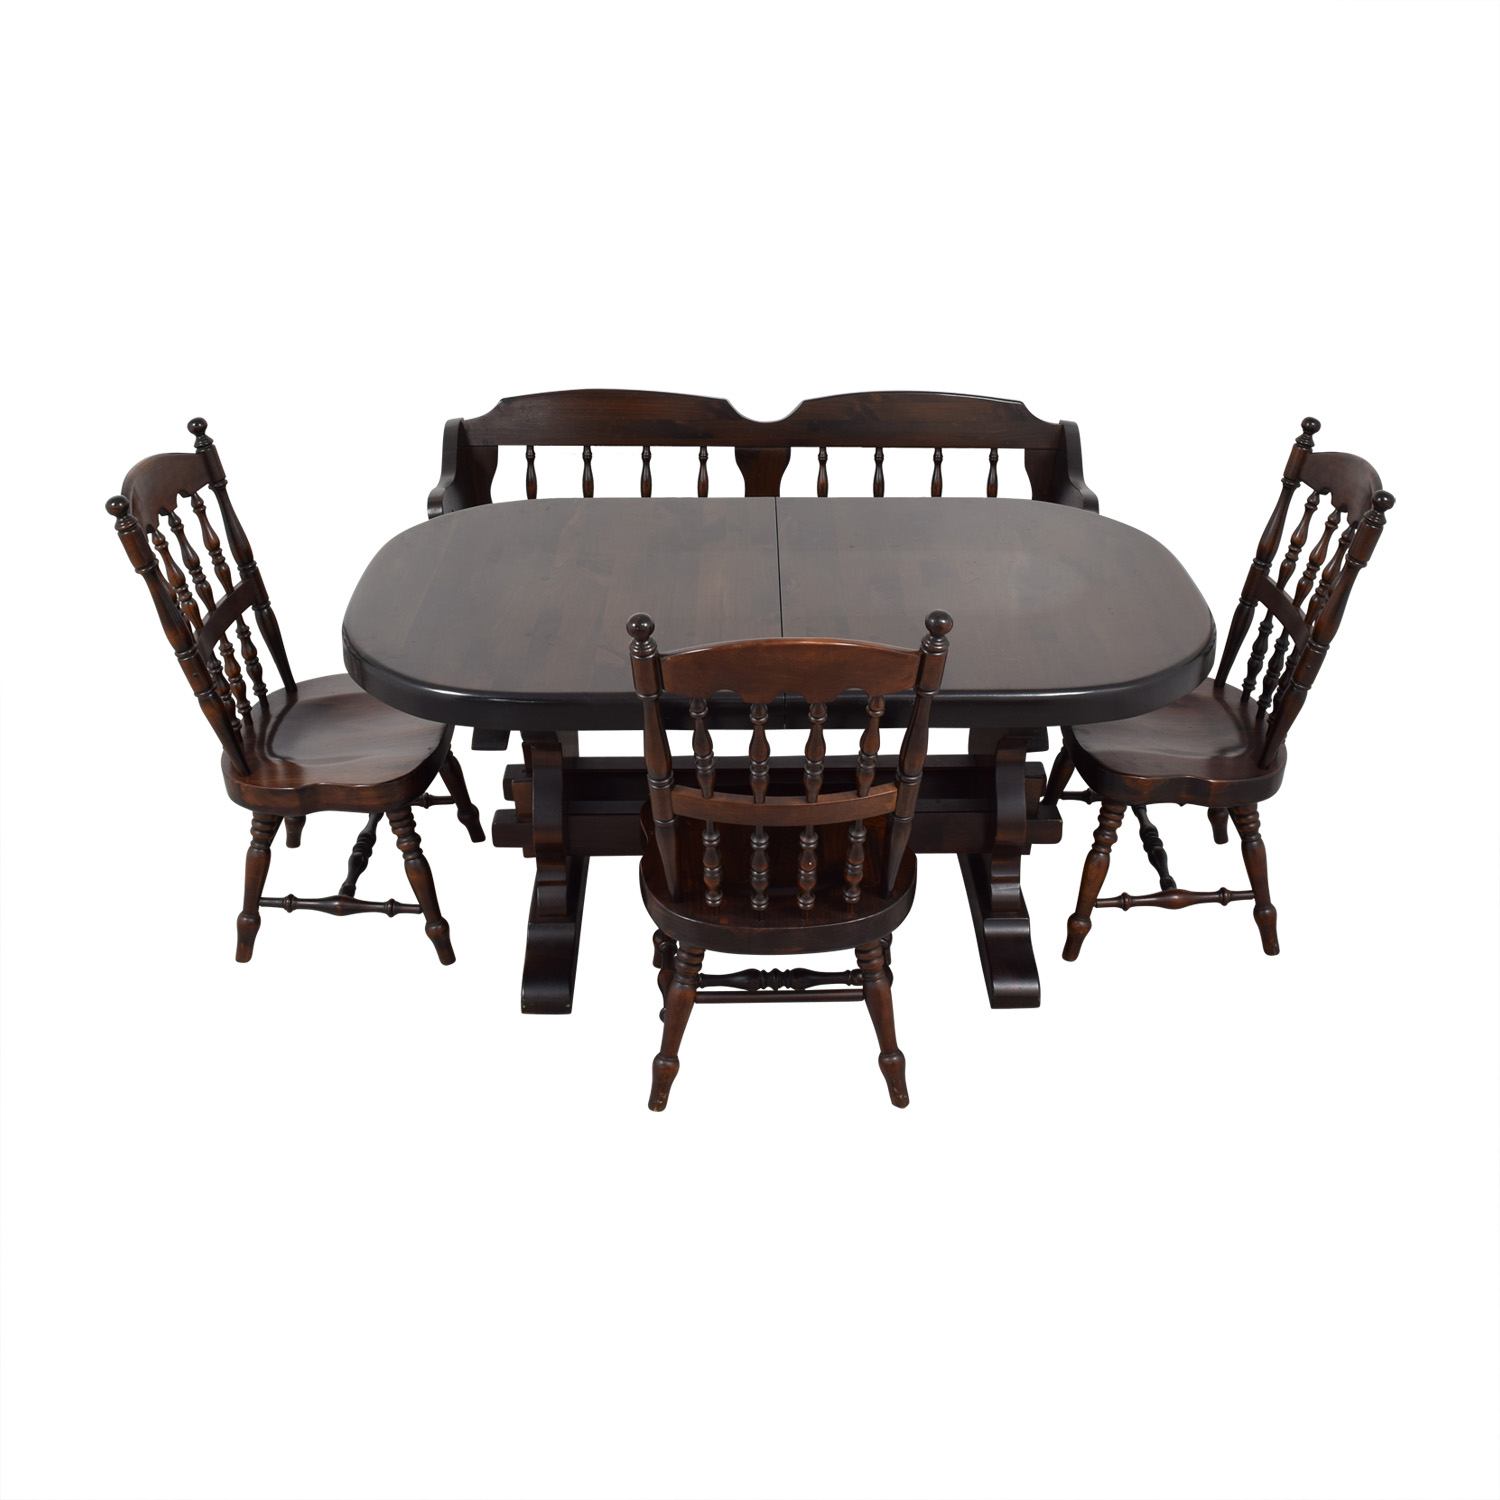 Bennington Pine Bennington Pine Extendable Dining Set price